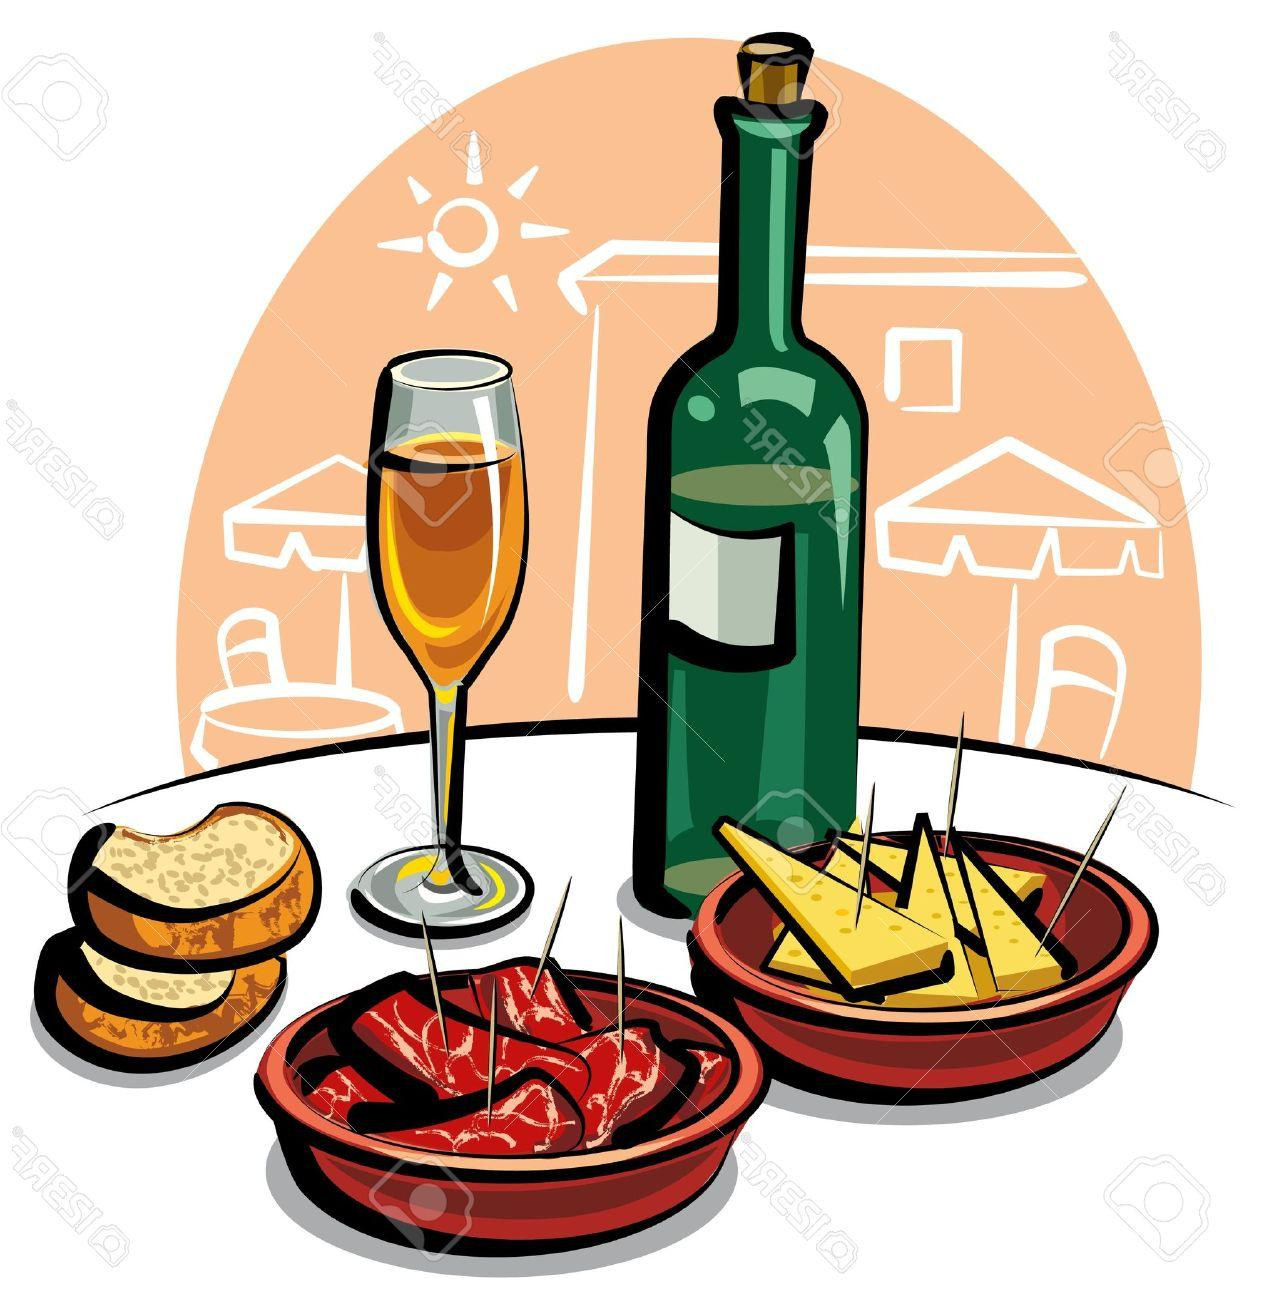 1264x1300 Best Free Appetizers And Cocktails Clip Art Vector Image Free